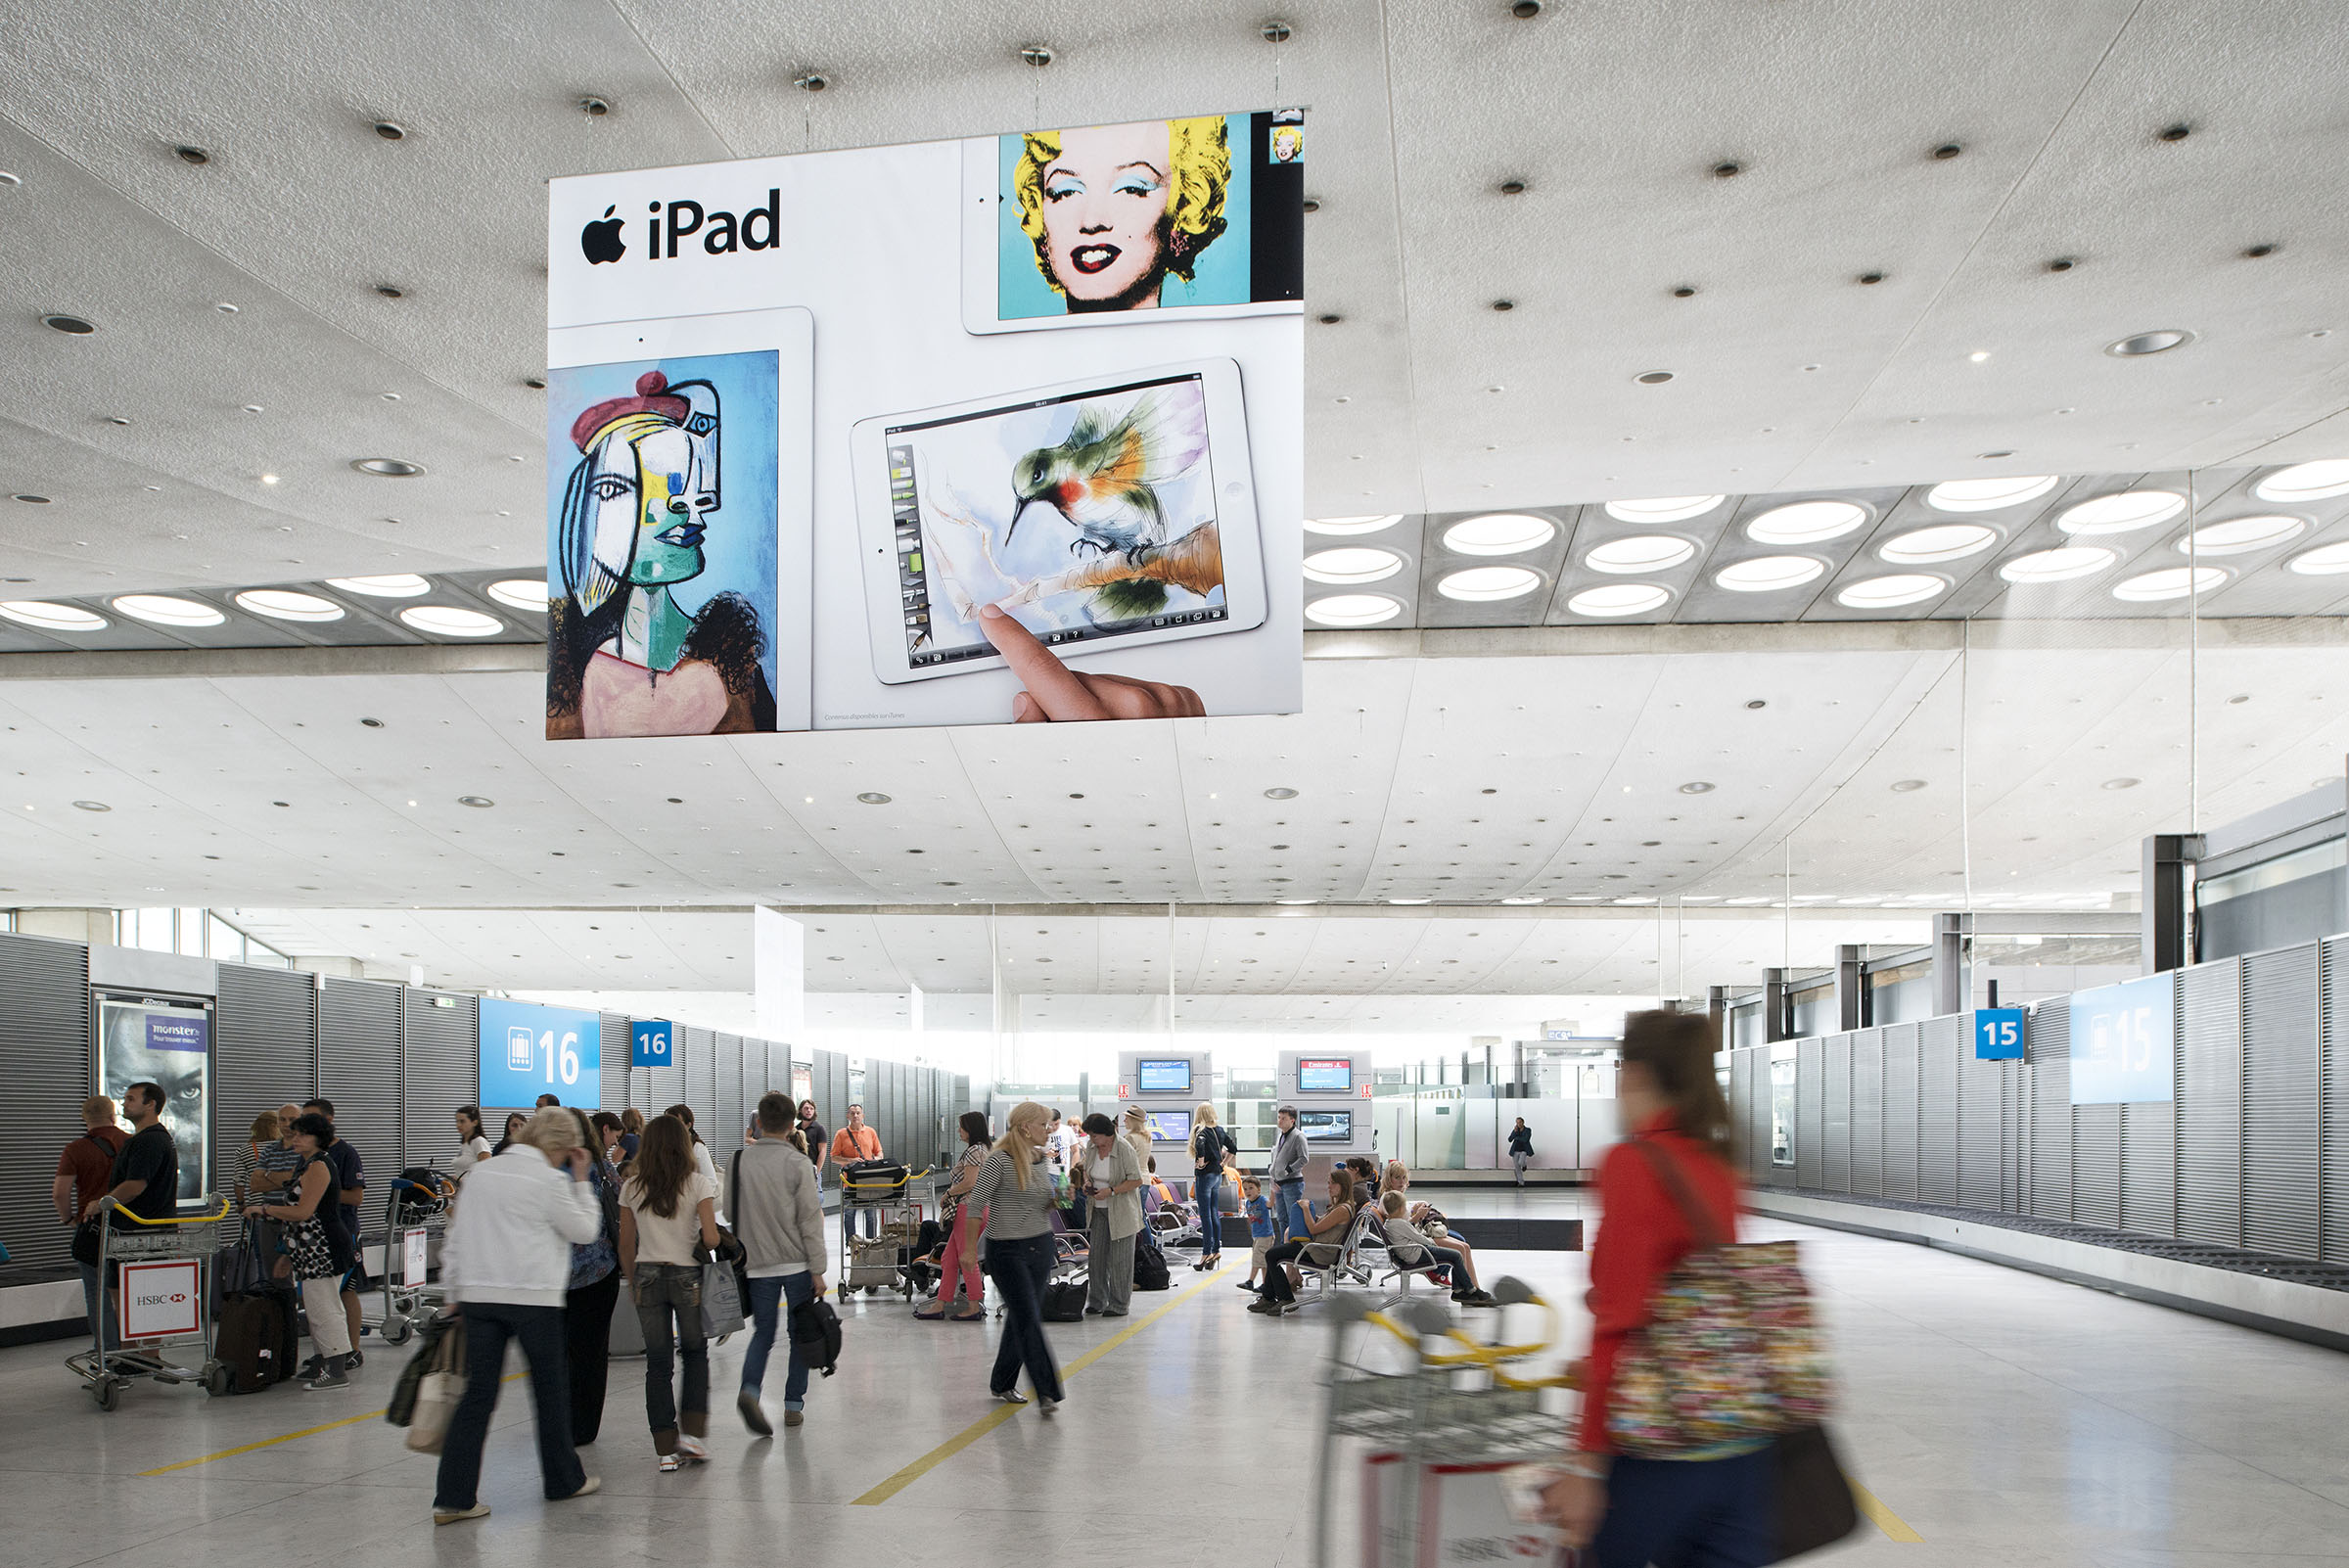 Apple_full giant banners_CDG 2C_0813.jpg